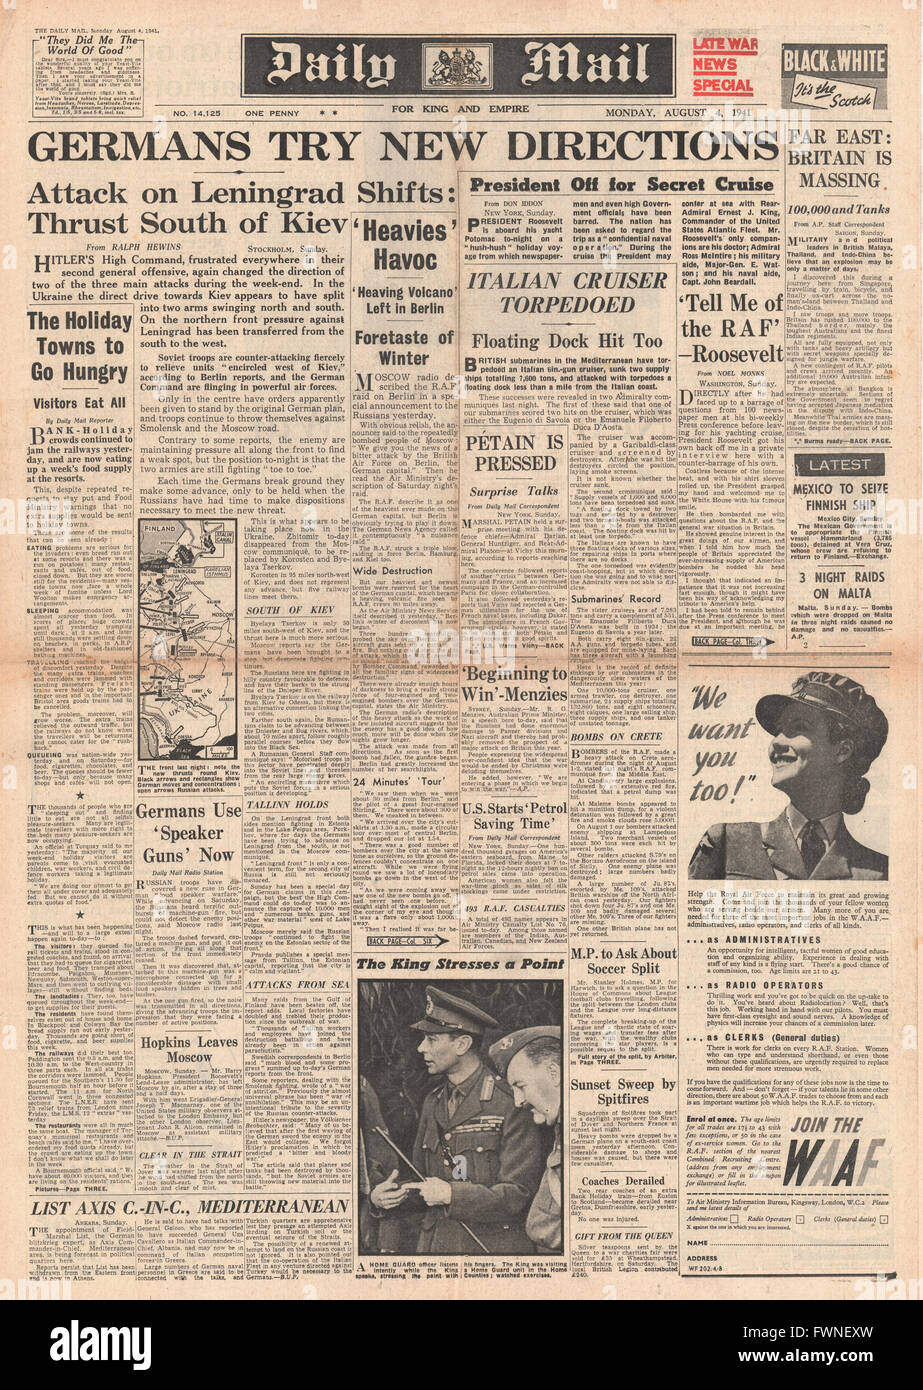 1941 front page Daily Mail Germans Advance on Eastern Front, Italian Cruiser Torpedoed and British Forces massing Stock Photo